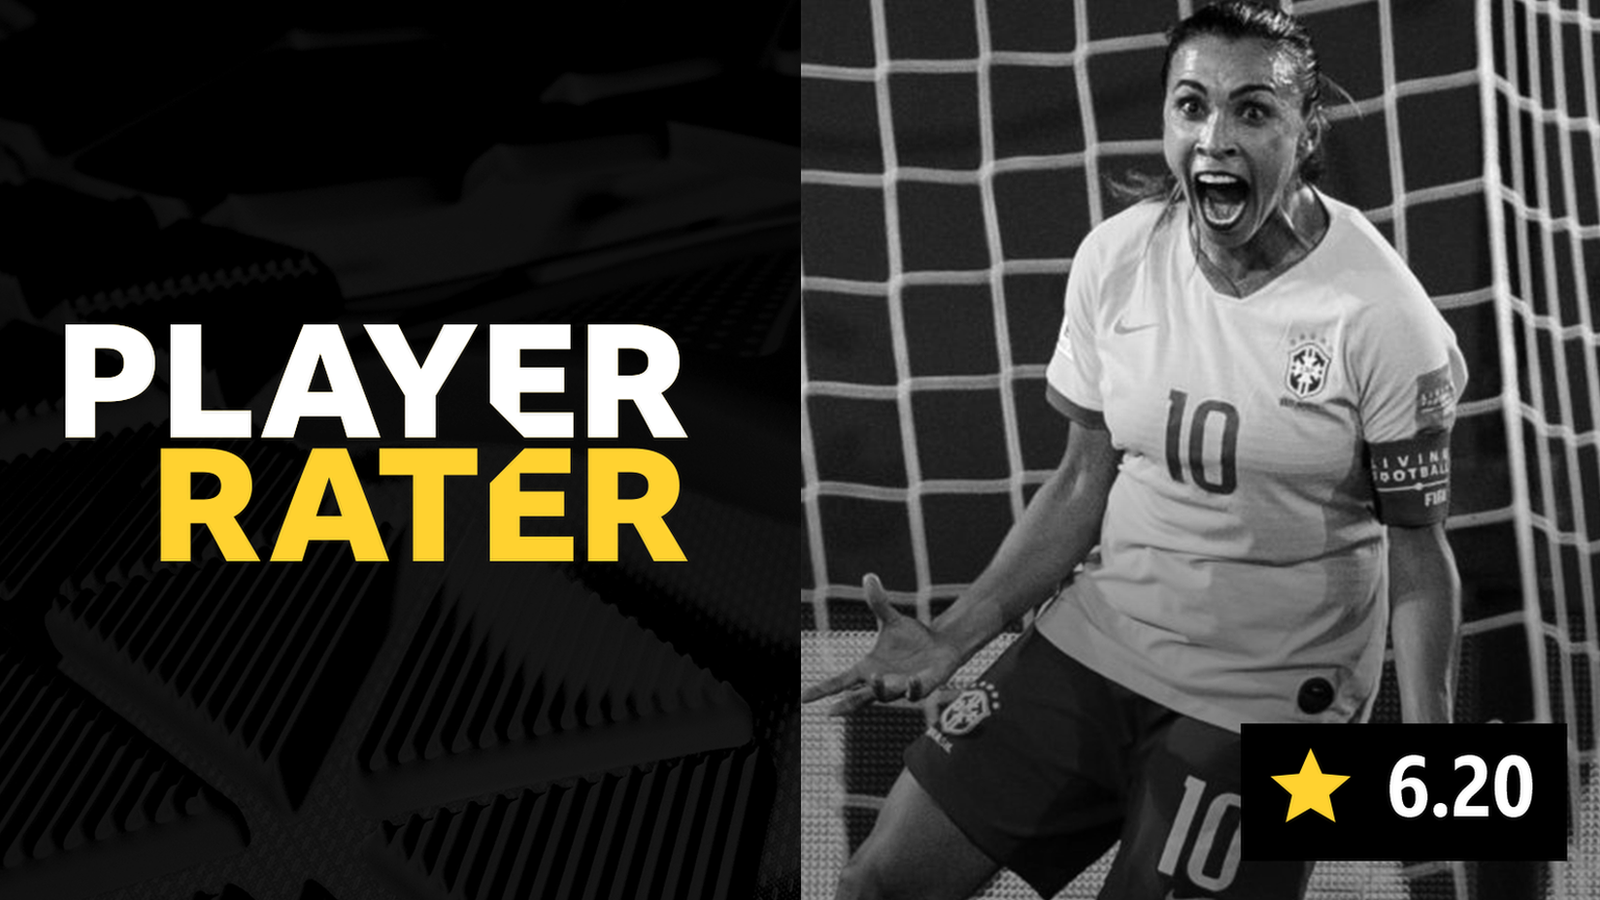 Women's World Cup: Brazil's Marta voted highest in player rater